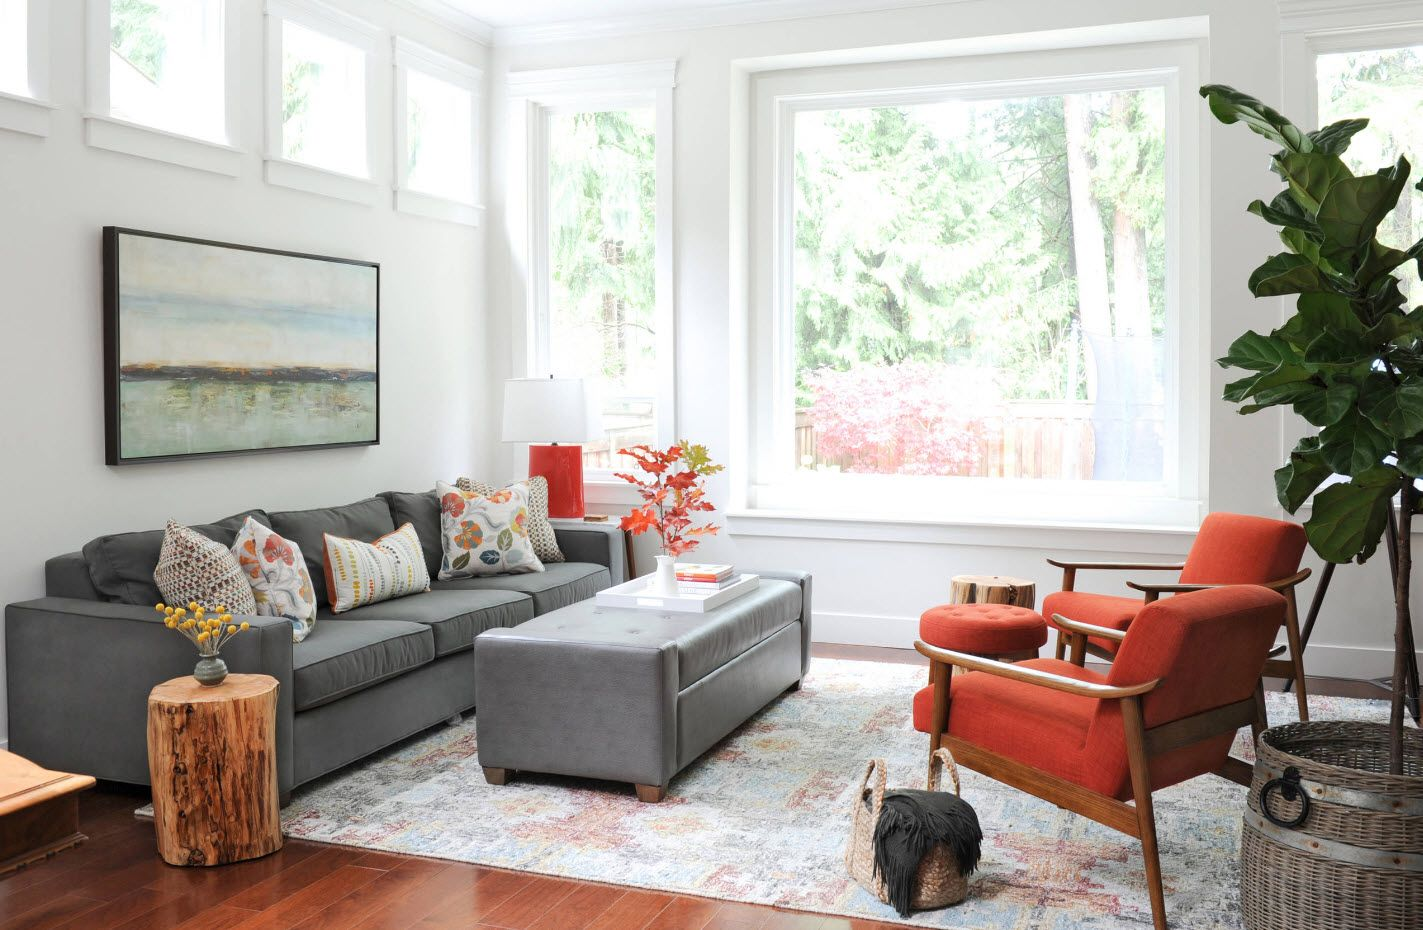 gray furniture set and light room trimming with large window